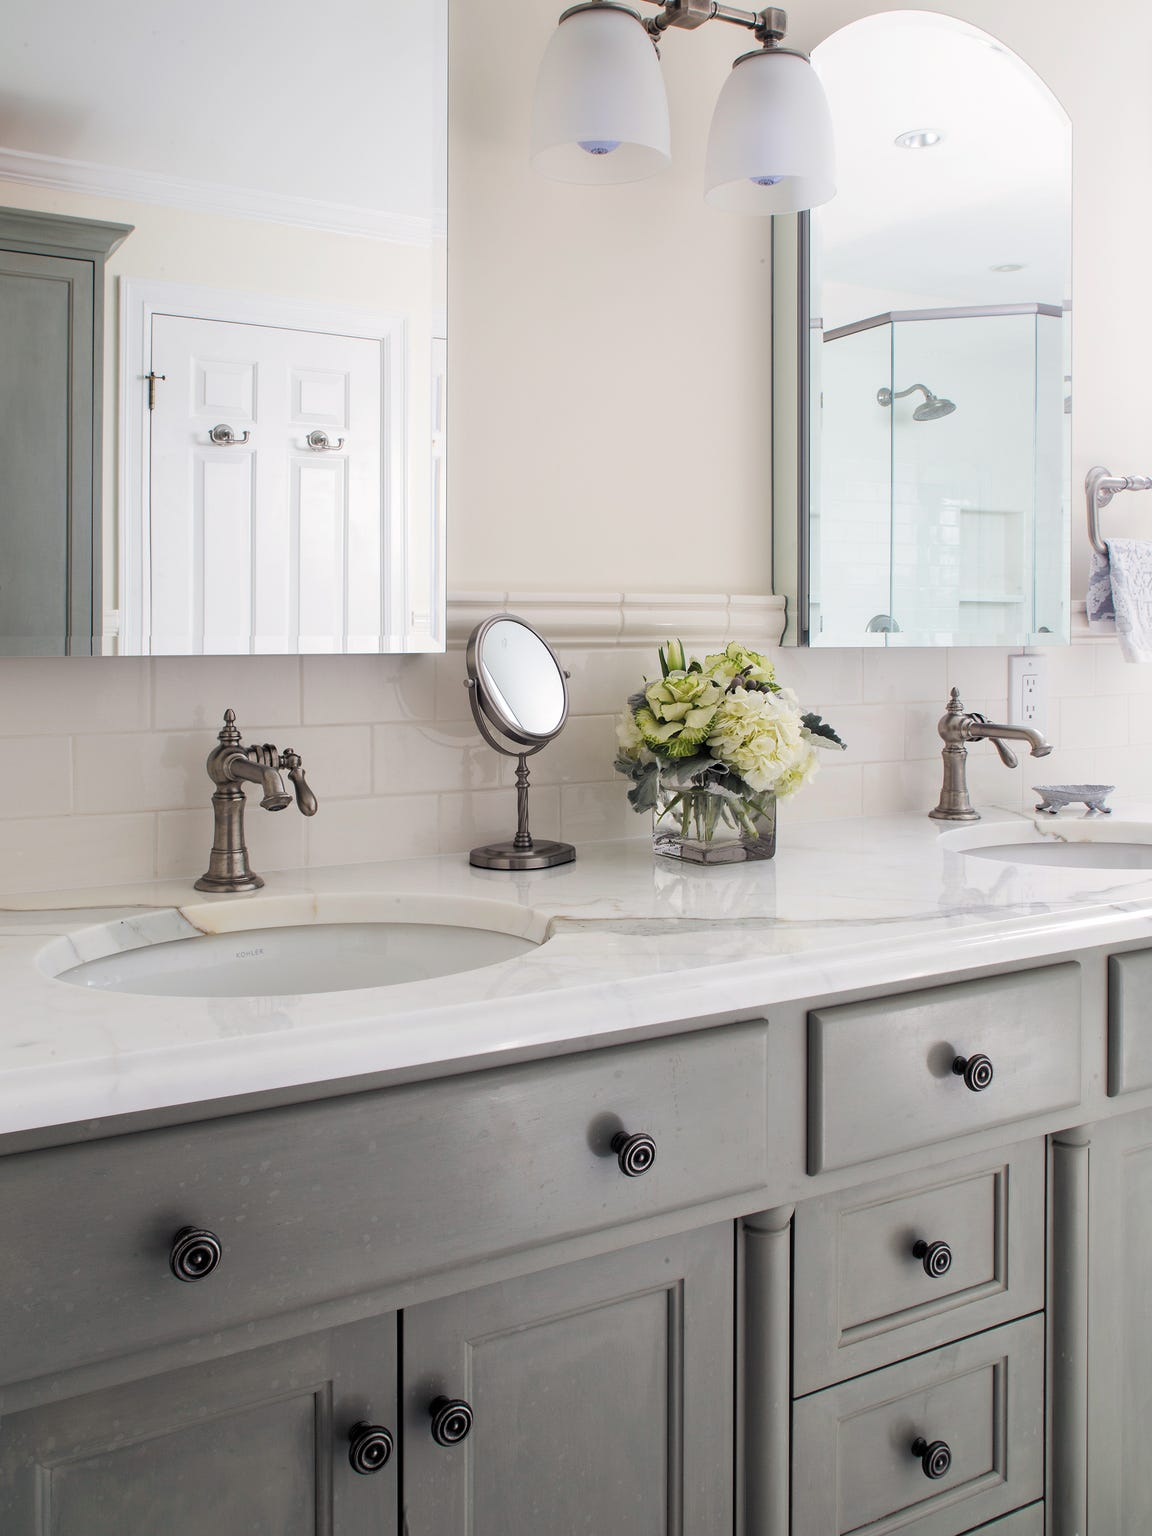 Gray and white carry through in bathrooms for a traditional-chic look.